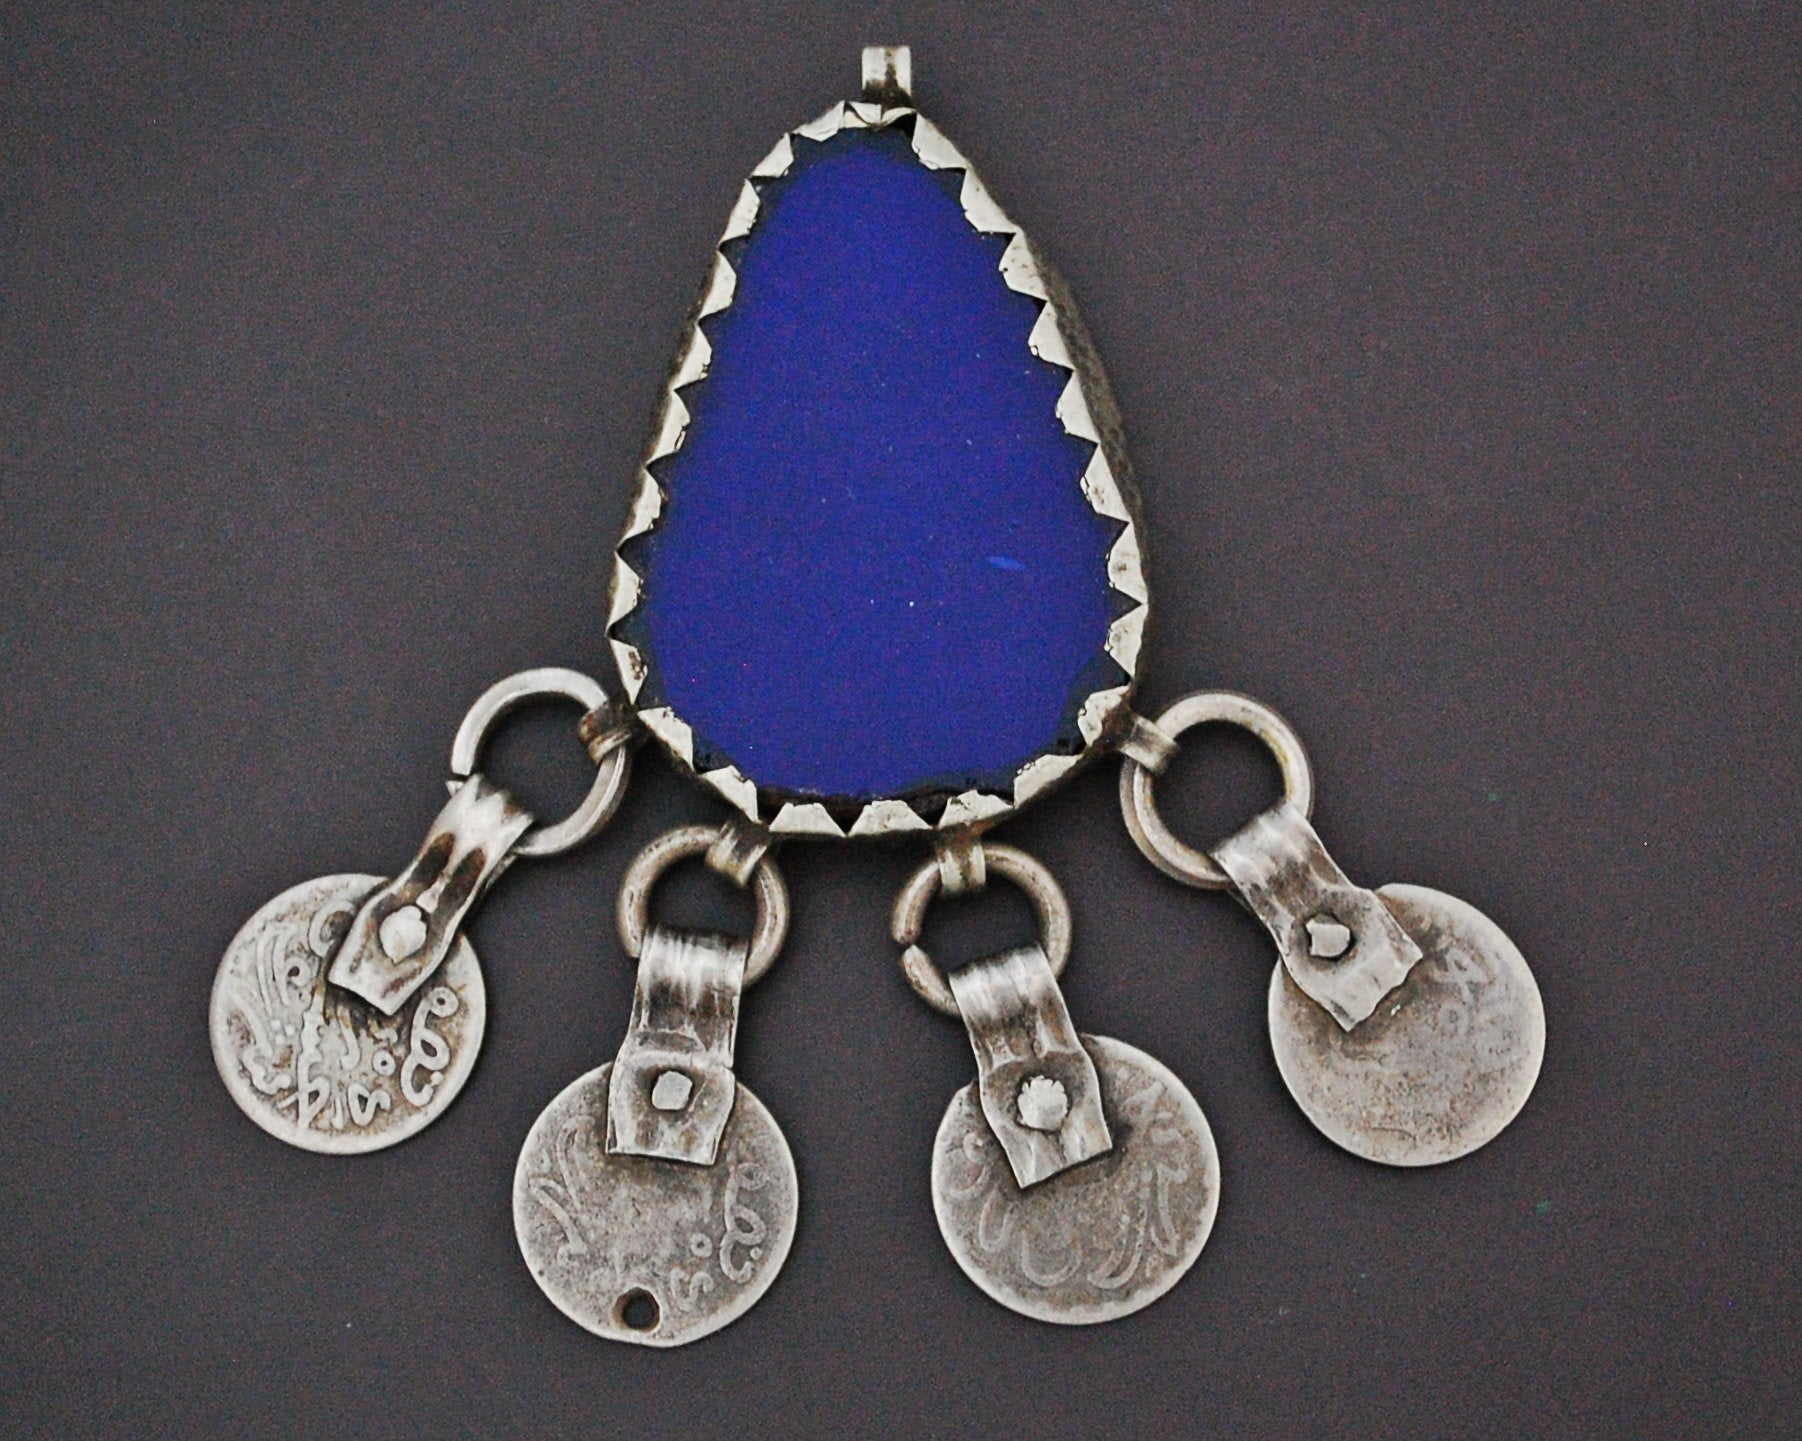 Berber Glass Pendant with Coins